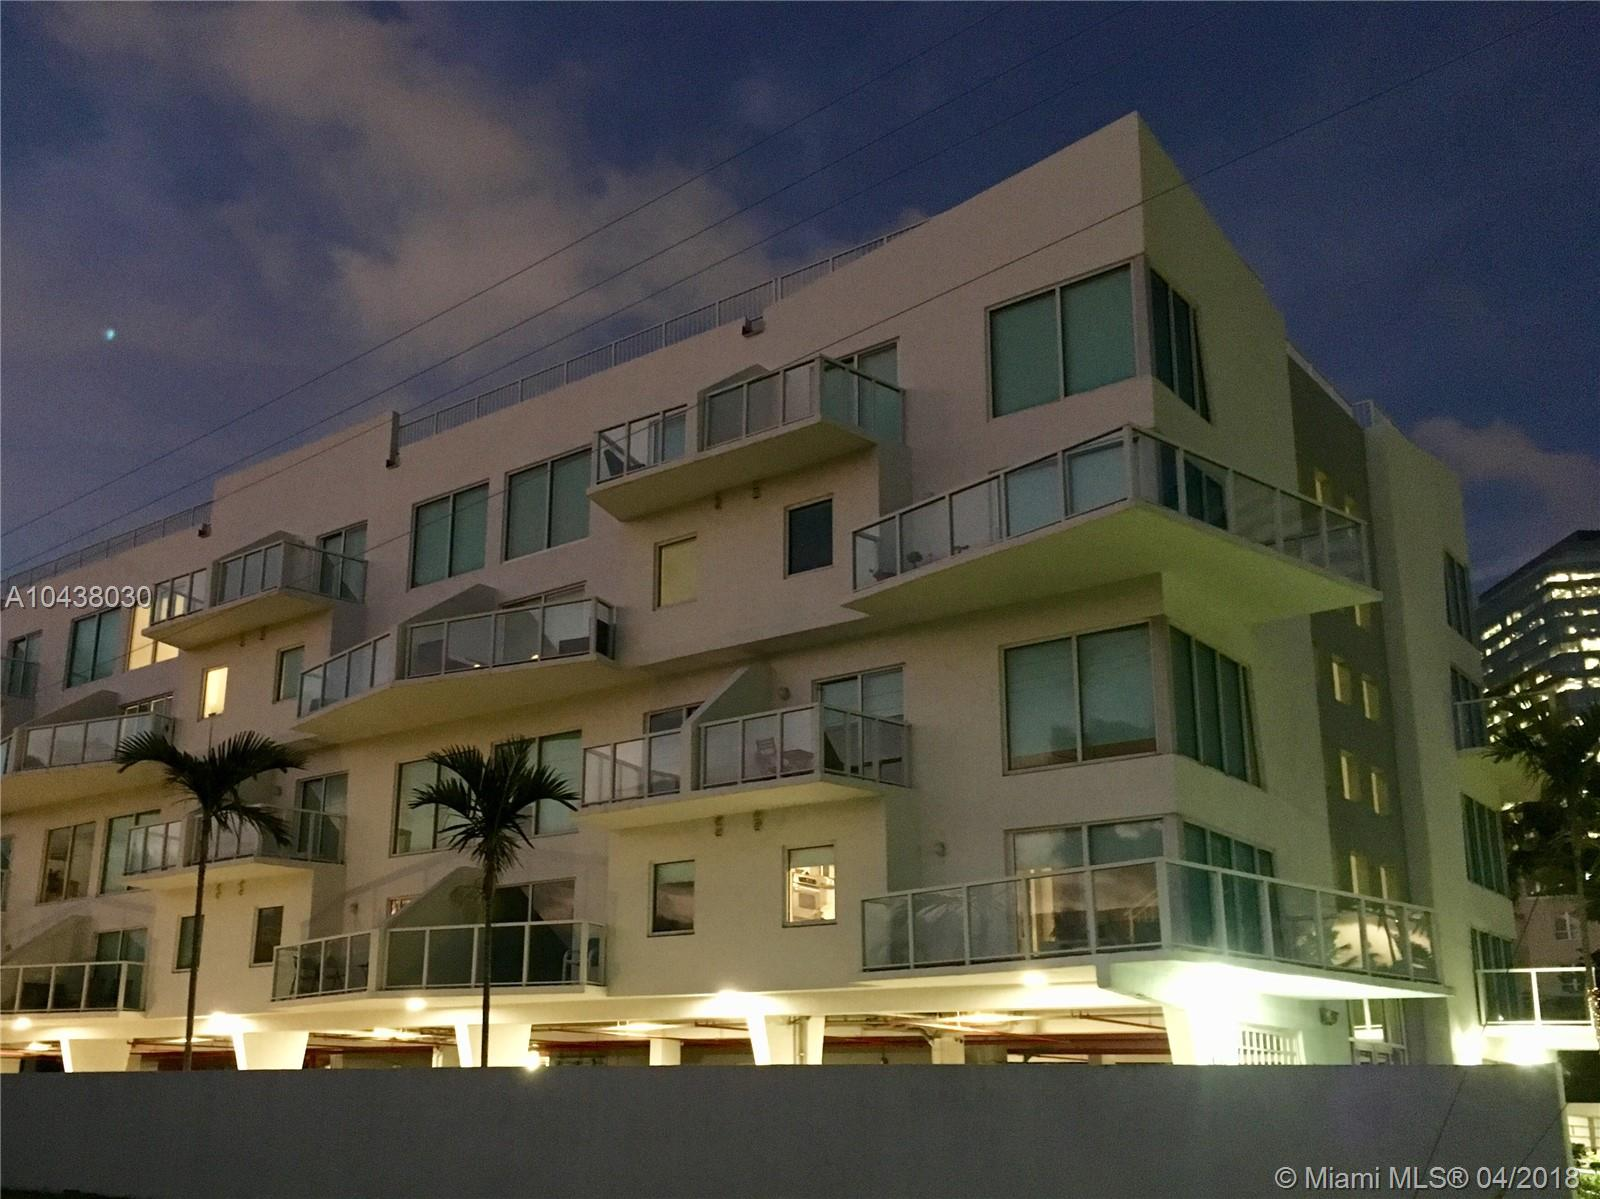 Boutique Building, Quiet Small Community With A Townhouse Feel, Parking Right At The First Floor, A Little Park Steps Away. Walking Distance To Brickell Center And Yet Away From All The Construction, Crowds And Noise. You Can See Biscayne Bay From A Second Floor Balcony.<Br /><Br />Cozy, Two-Story, 1 Bedroom And 1.5 Bathroom Loft With Two Balconies, High 18+Ógé¼Gäó Ceiling, Marble Floor Throughout, New Washer And Dryer, Home Automation Enabled With Smart Front Door Lock And Thermostat.<Br /><Br />Furniture Could Be Included For A Very Reasonable Price